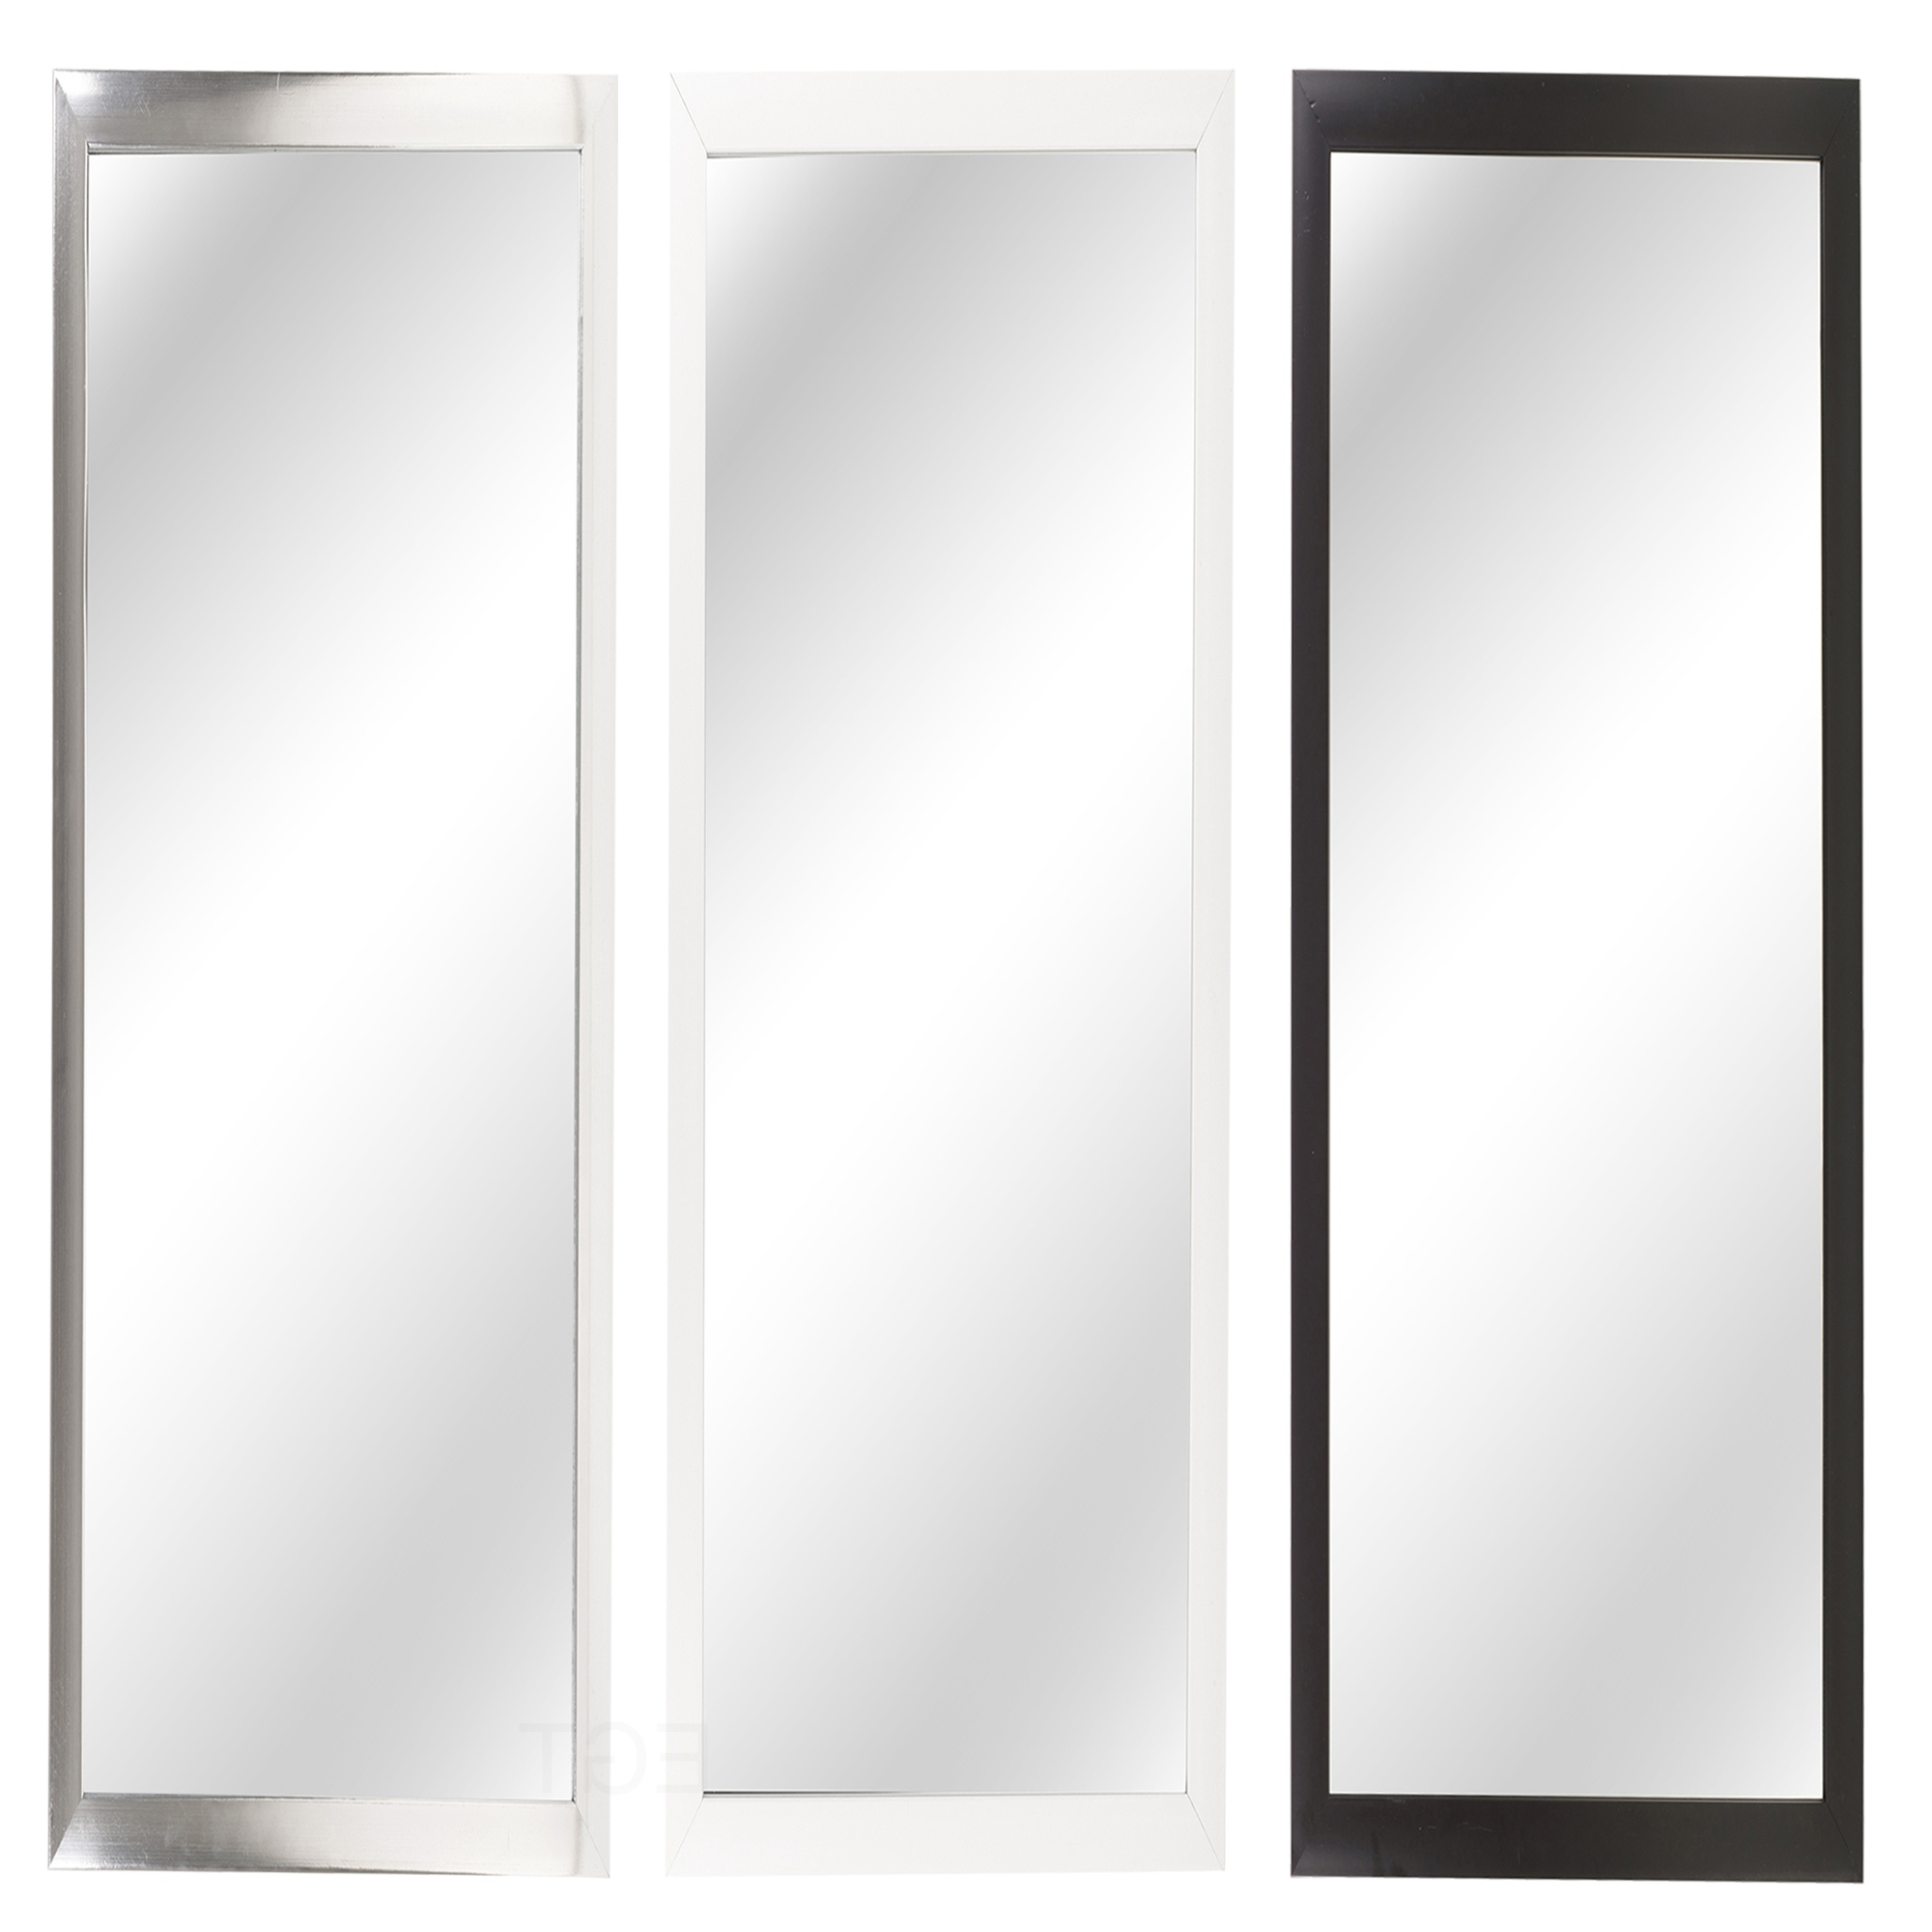 2020 Details About Large Long Wall Mirror Leaner Full Length Floor Bedroom  Furniture Hanging Dress In Long White Wall Mirrors (View 2 of 20)